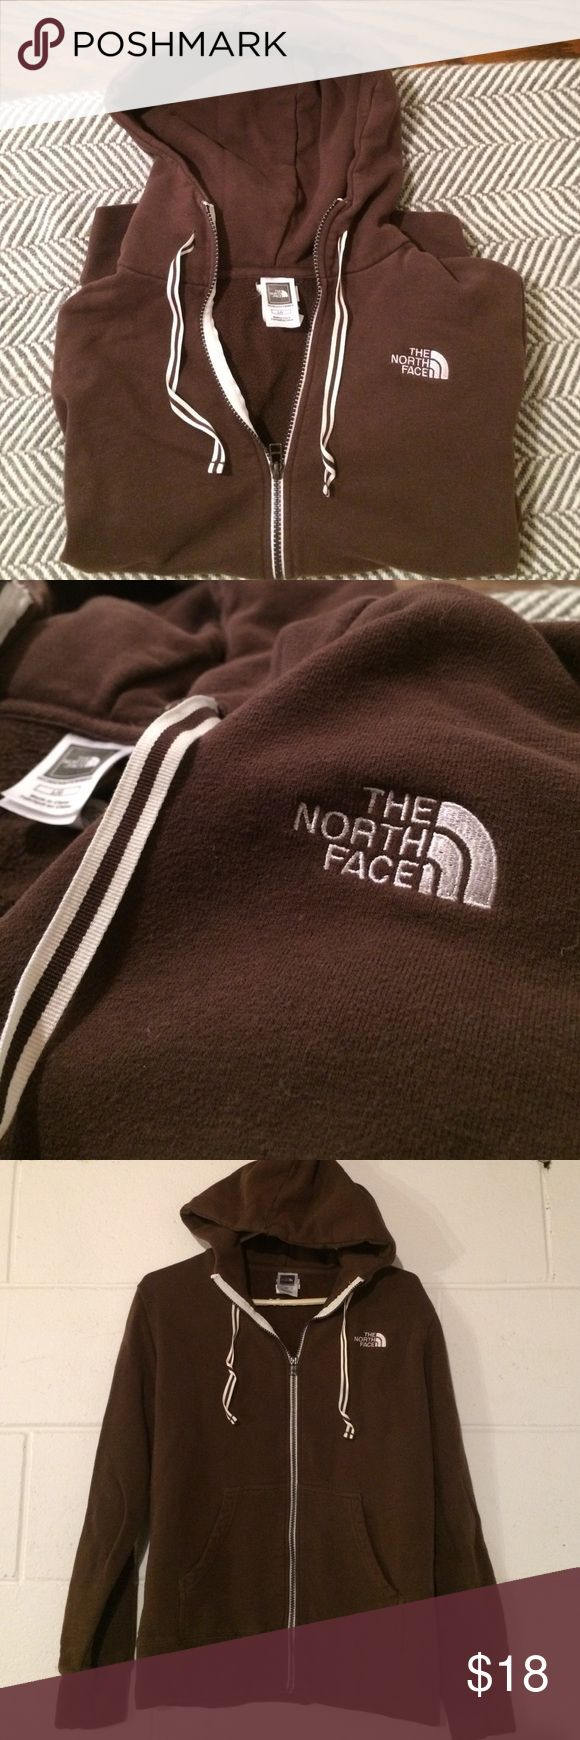 North Face Zip-up Hoodie Sweatshirt. Like new!! Brown zip up North Face Hoodie. It's in excellent condition. Has pouch in front for hands. Zipper works great. Super cute women's hoodie! The North Face Tops Sweatshirts & Hoodies